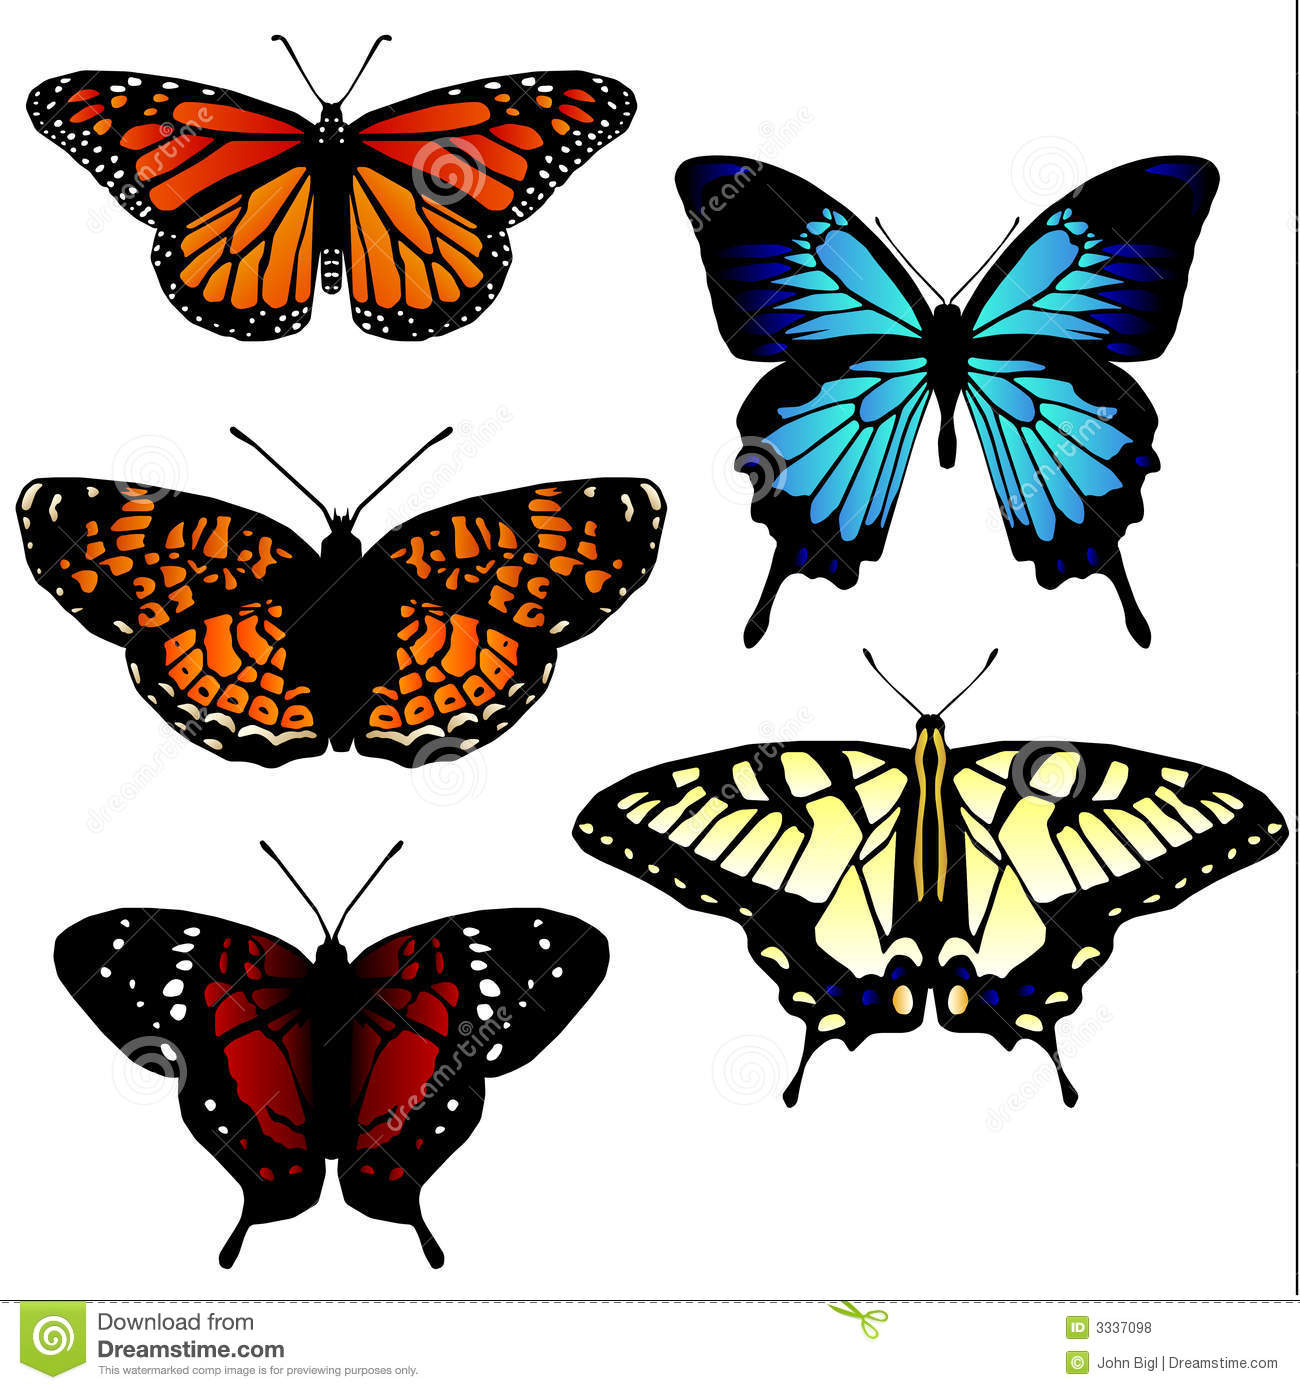 Butterfly Illustrations Royalty Free Stock Photos - Image: 3337098